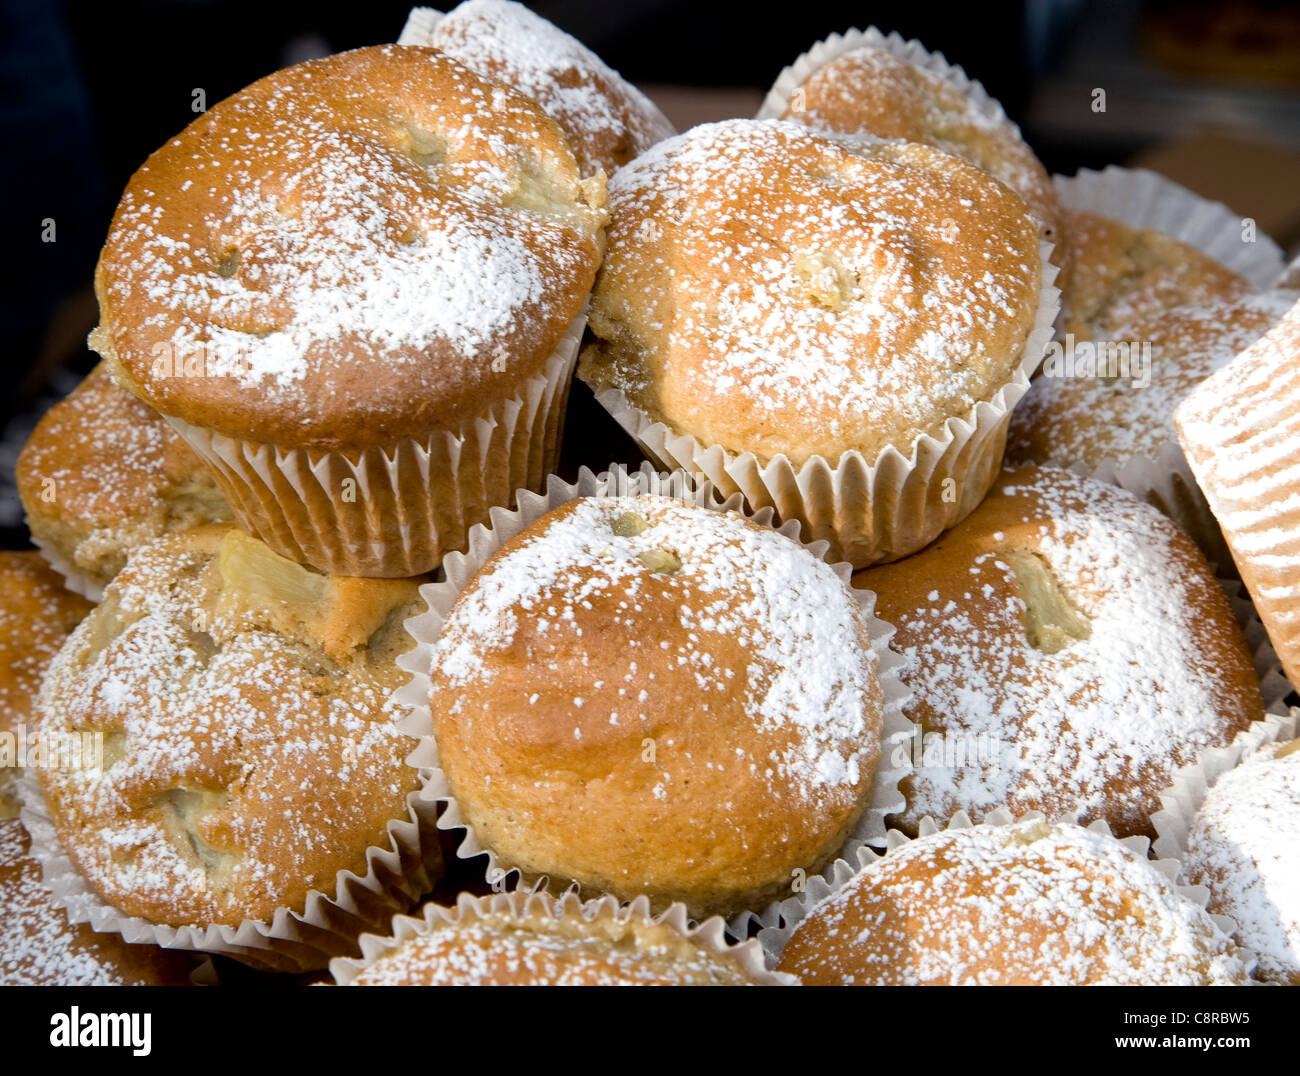 Cakes for sale at a market - Stock Image